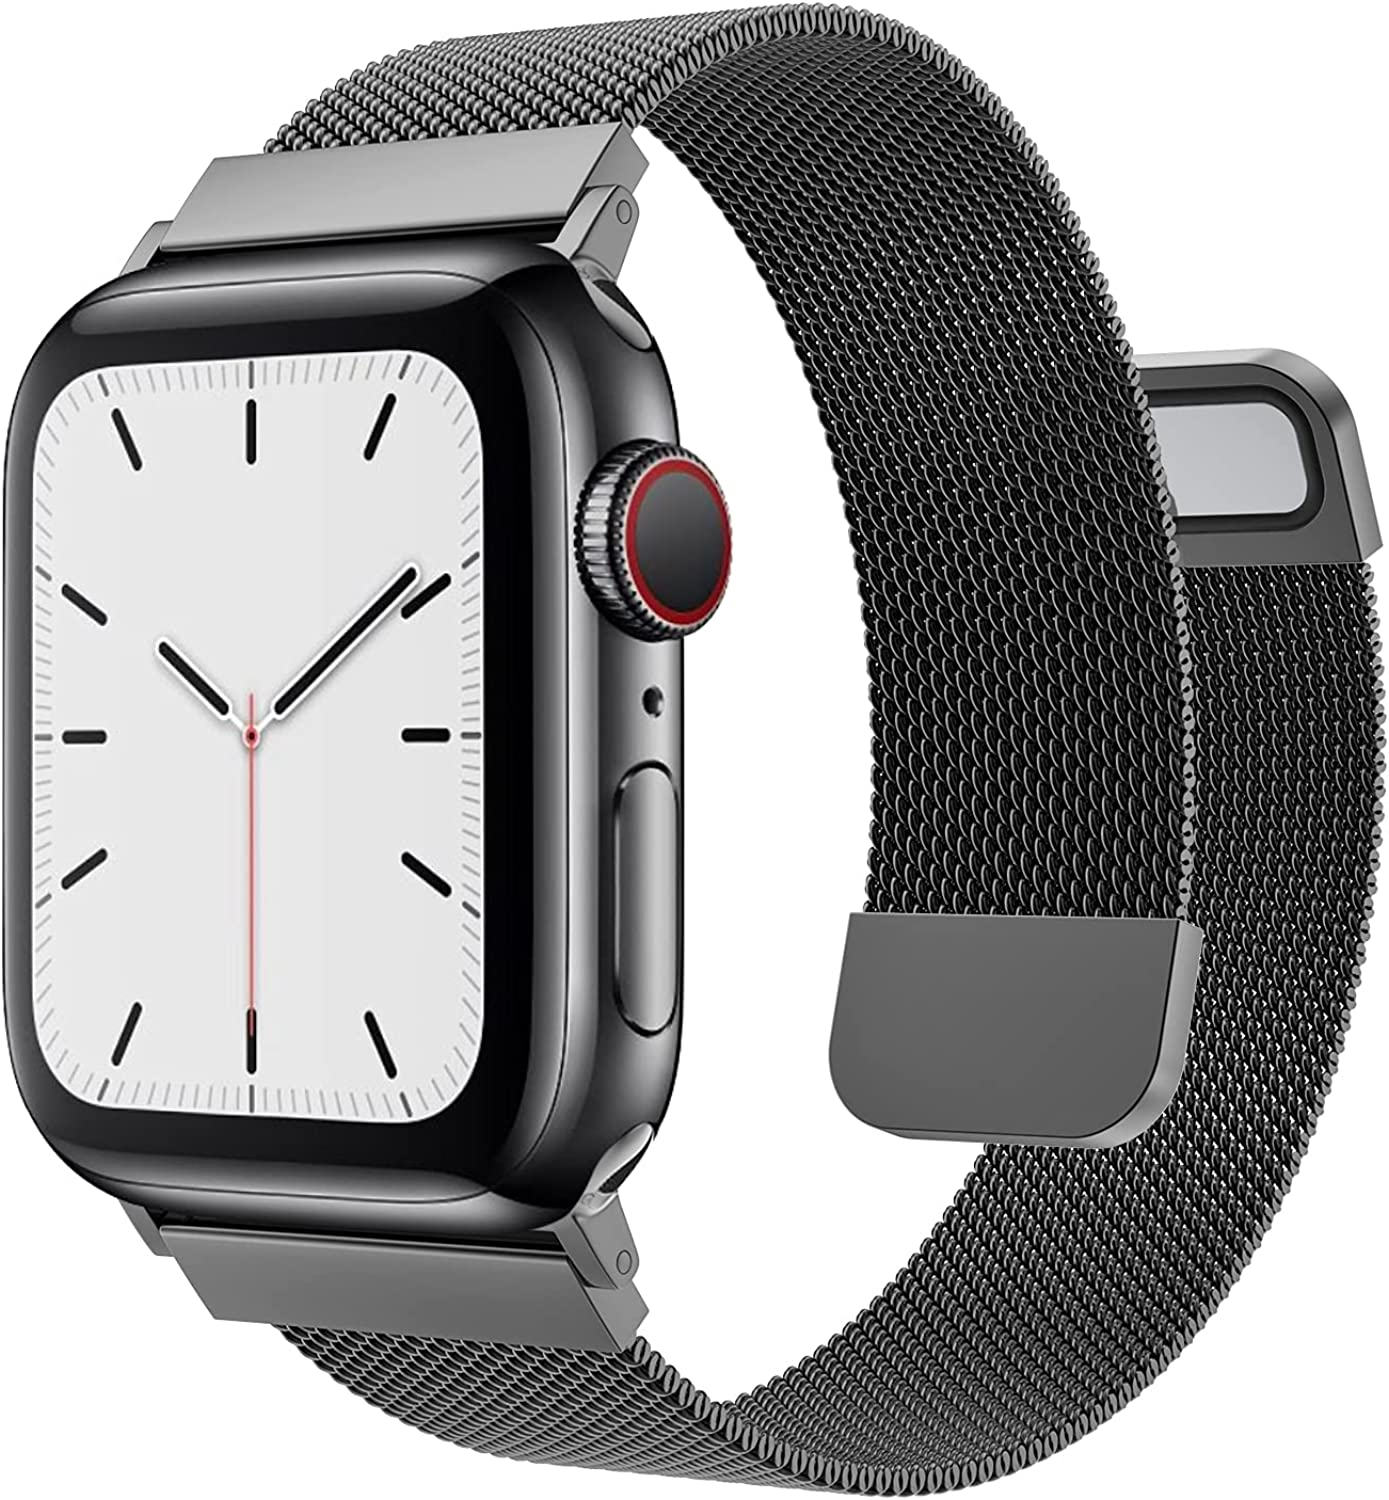 MRAIN-H Compatible with Apple Watch Band 38mm 40mm 42mm 44mm Women Men, Mesh Stainless Steel Wristbands with Two Strong Powerful Magnetic Clasp for iWatch Bands Series 6/SE/5/4/3/2/1